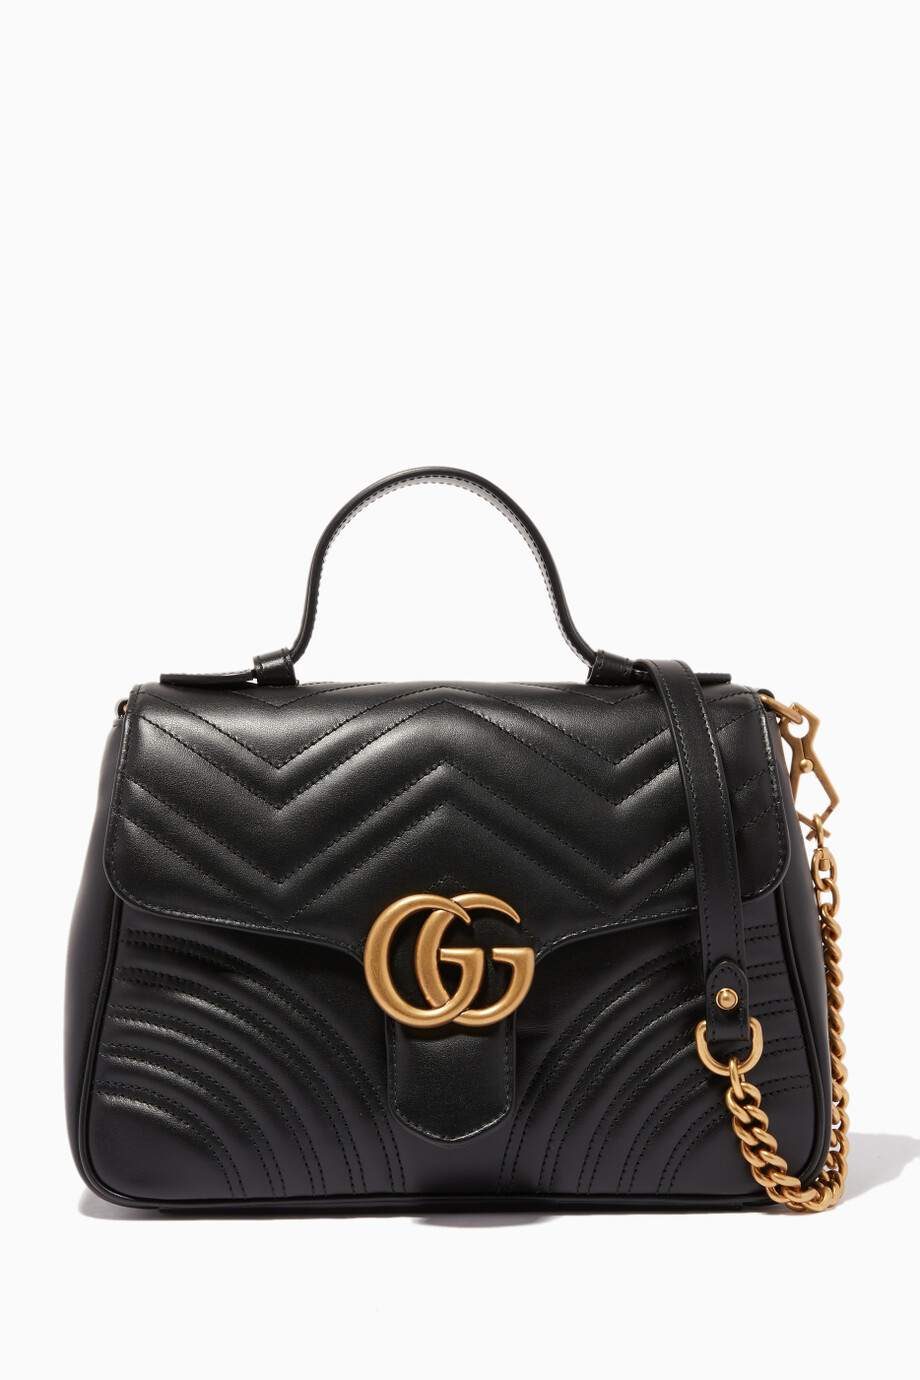 46126bb5a3f Shop Gucci Black Black Small GG Marmont Top Handle Bag for Women ...